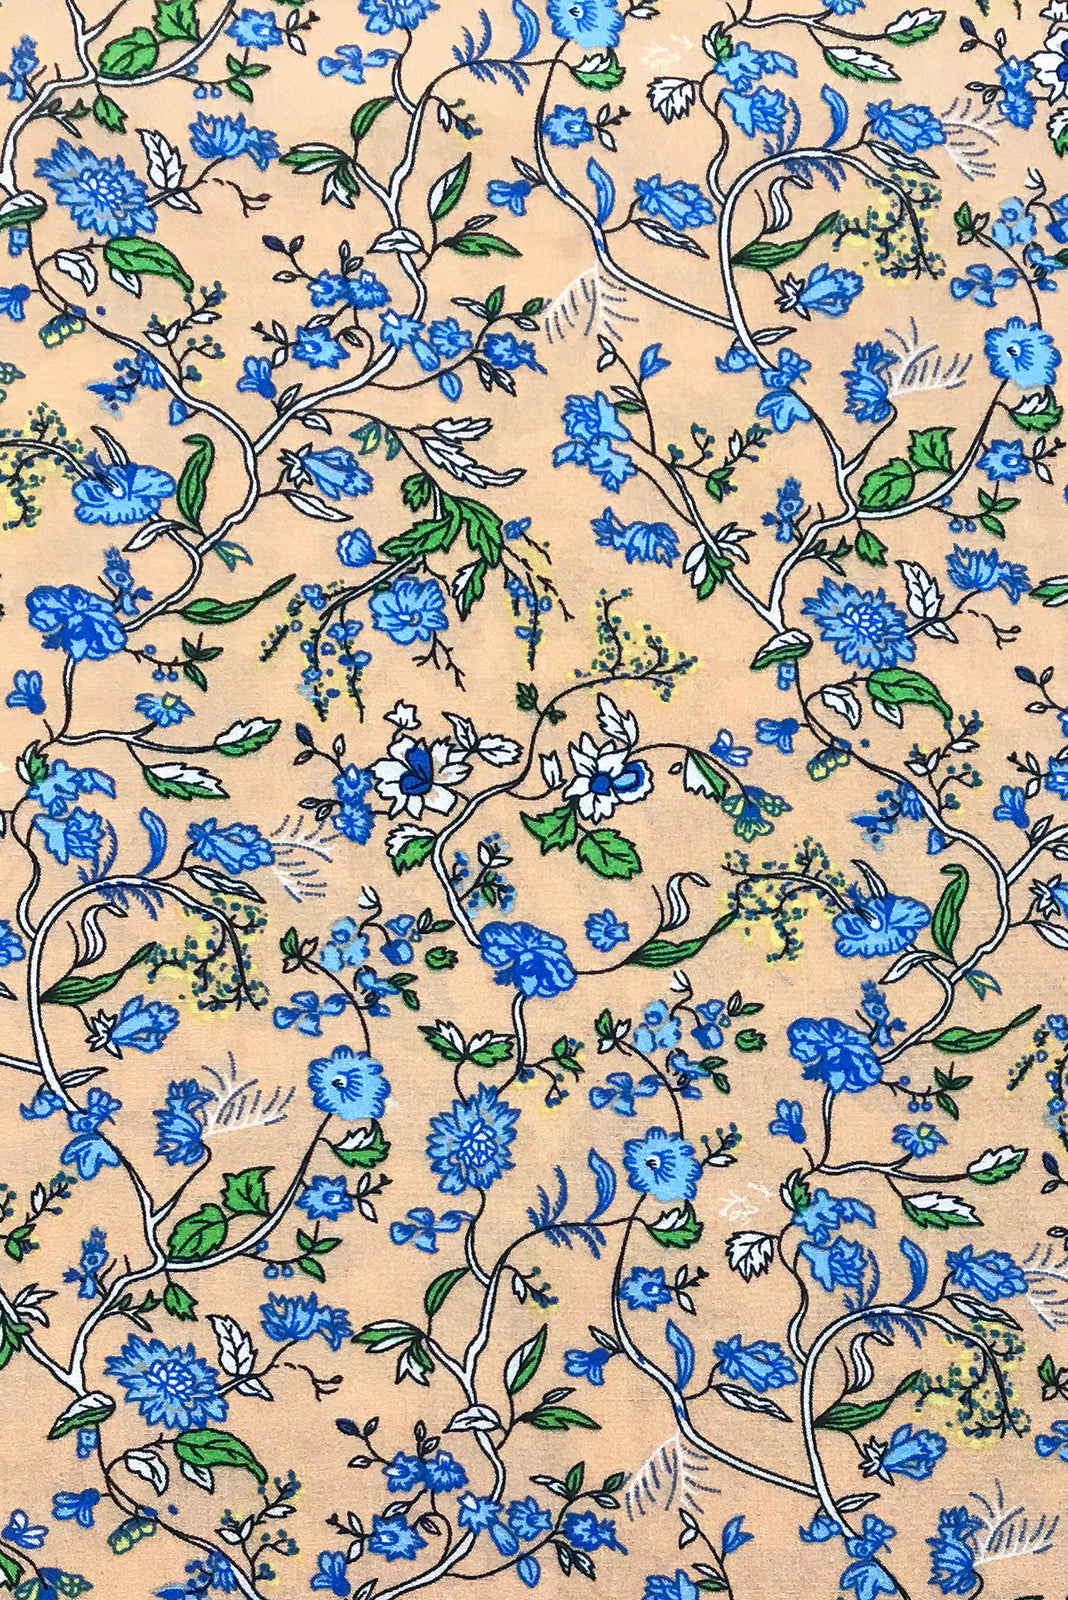 Fabric Swatch of Juniper Ecru Haze Maxi Dress features woven 100% rayon in warm Ecru base with a blue floral vine print.